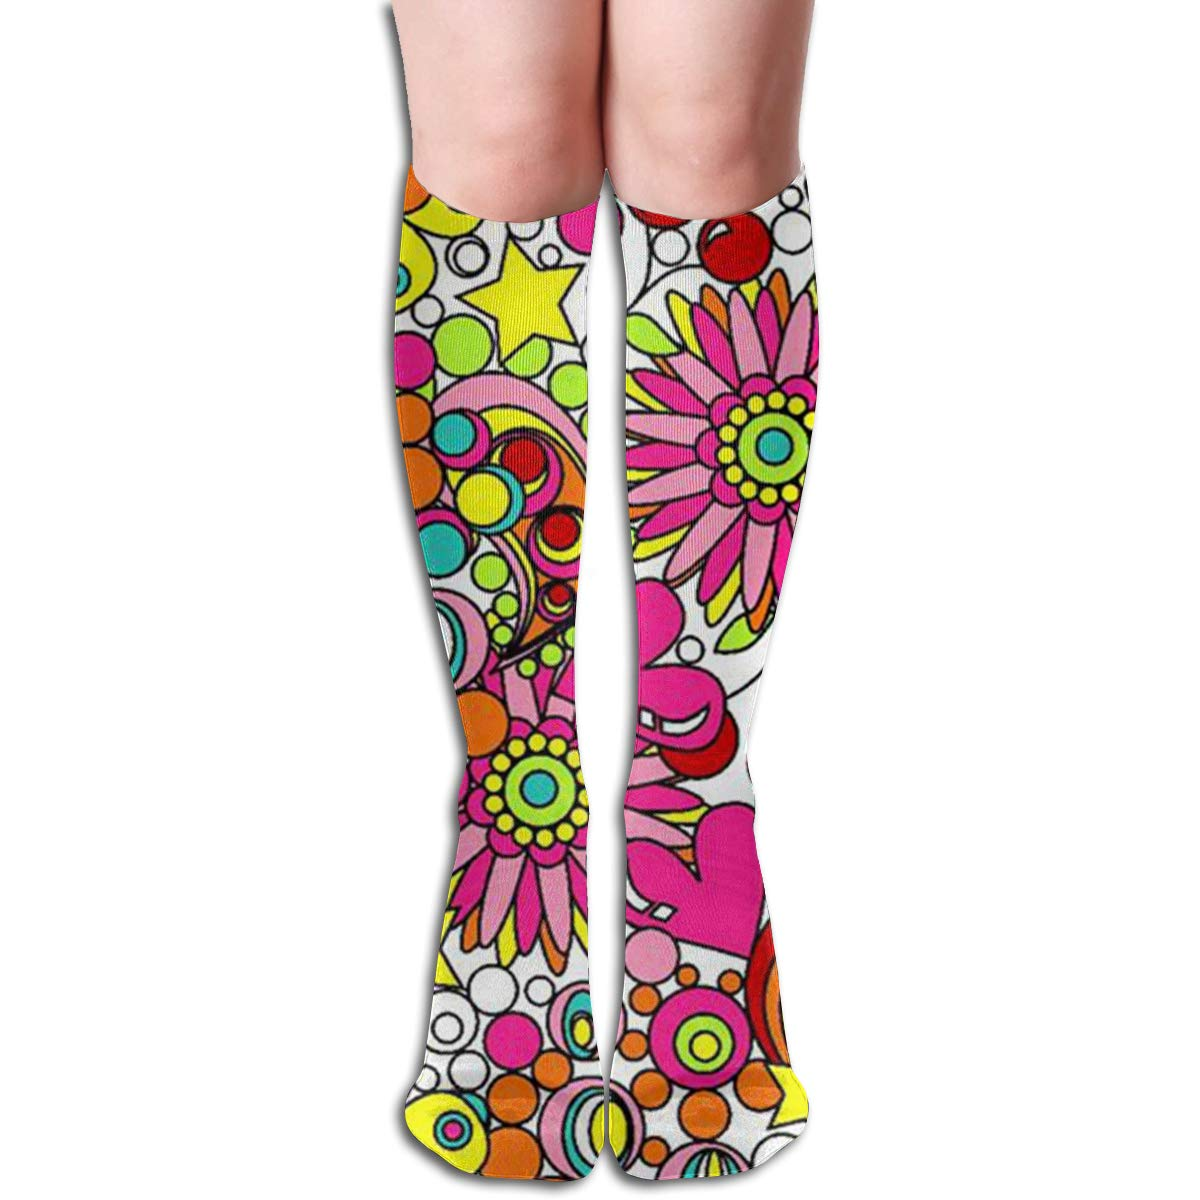 Girls Socks Over Knee Cactus Watercolor Winter Warmth Cool For Christmas